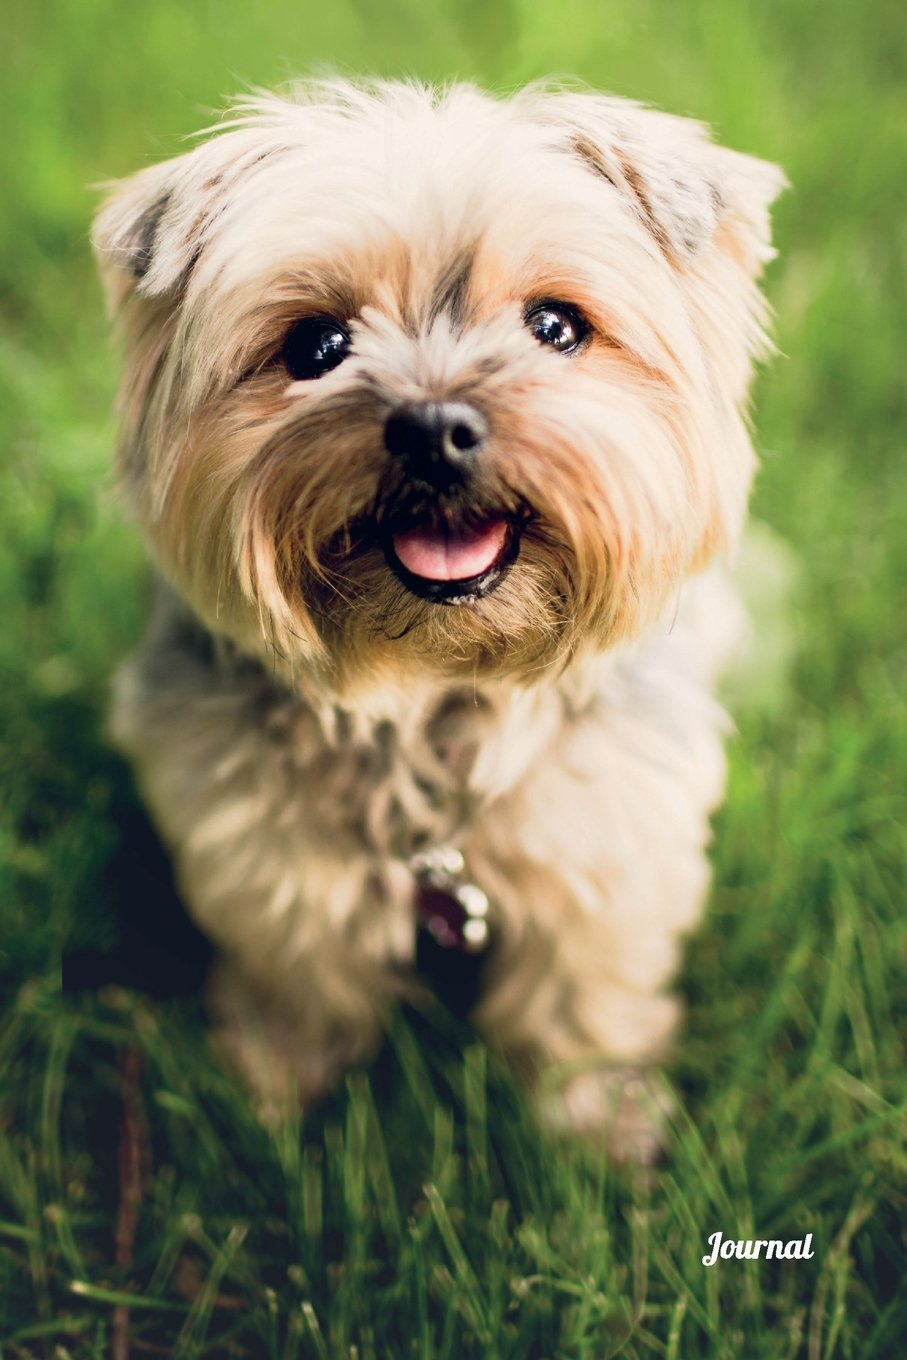 Journal Yorkshire Terrier Dog Journal Notebook Diary 100 Lined Pages Cute Yorkie Puppy Cover Journal To Write In May Emma 9781723572296 Amazon Com Books